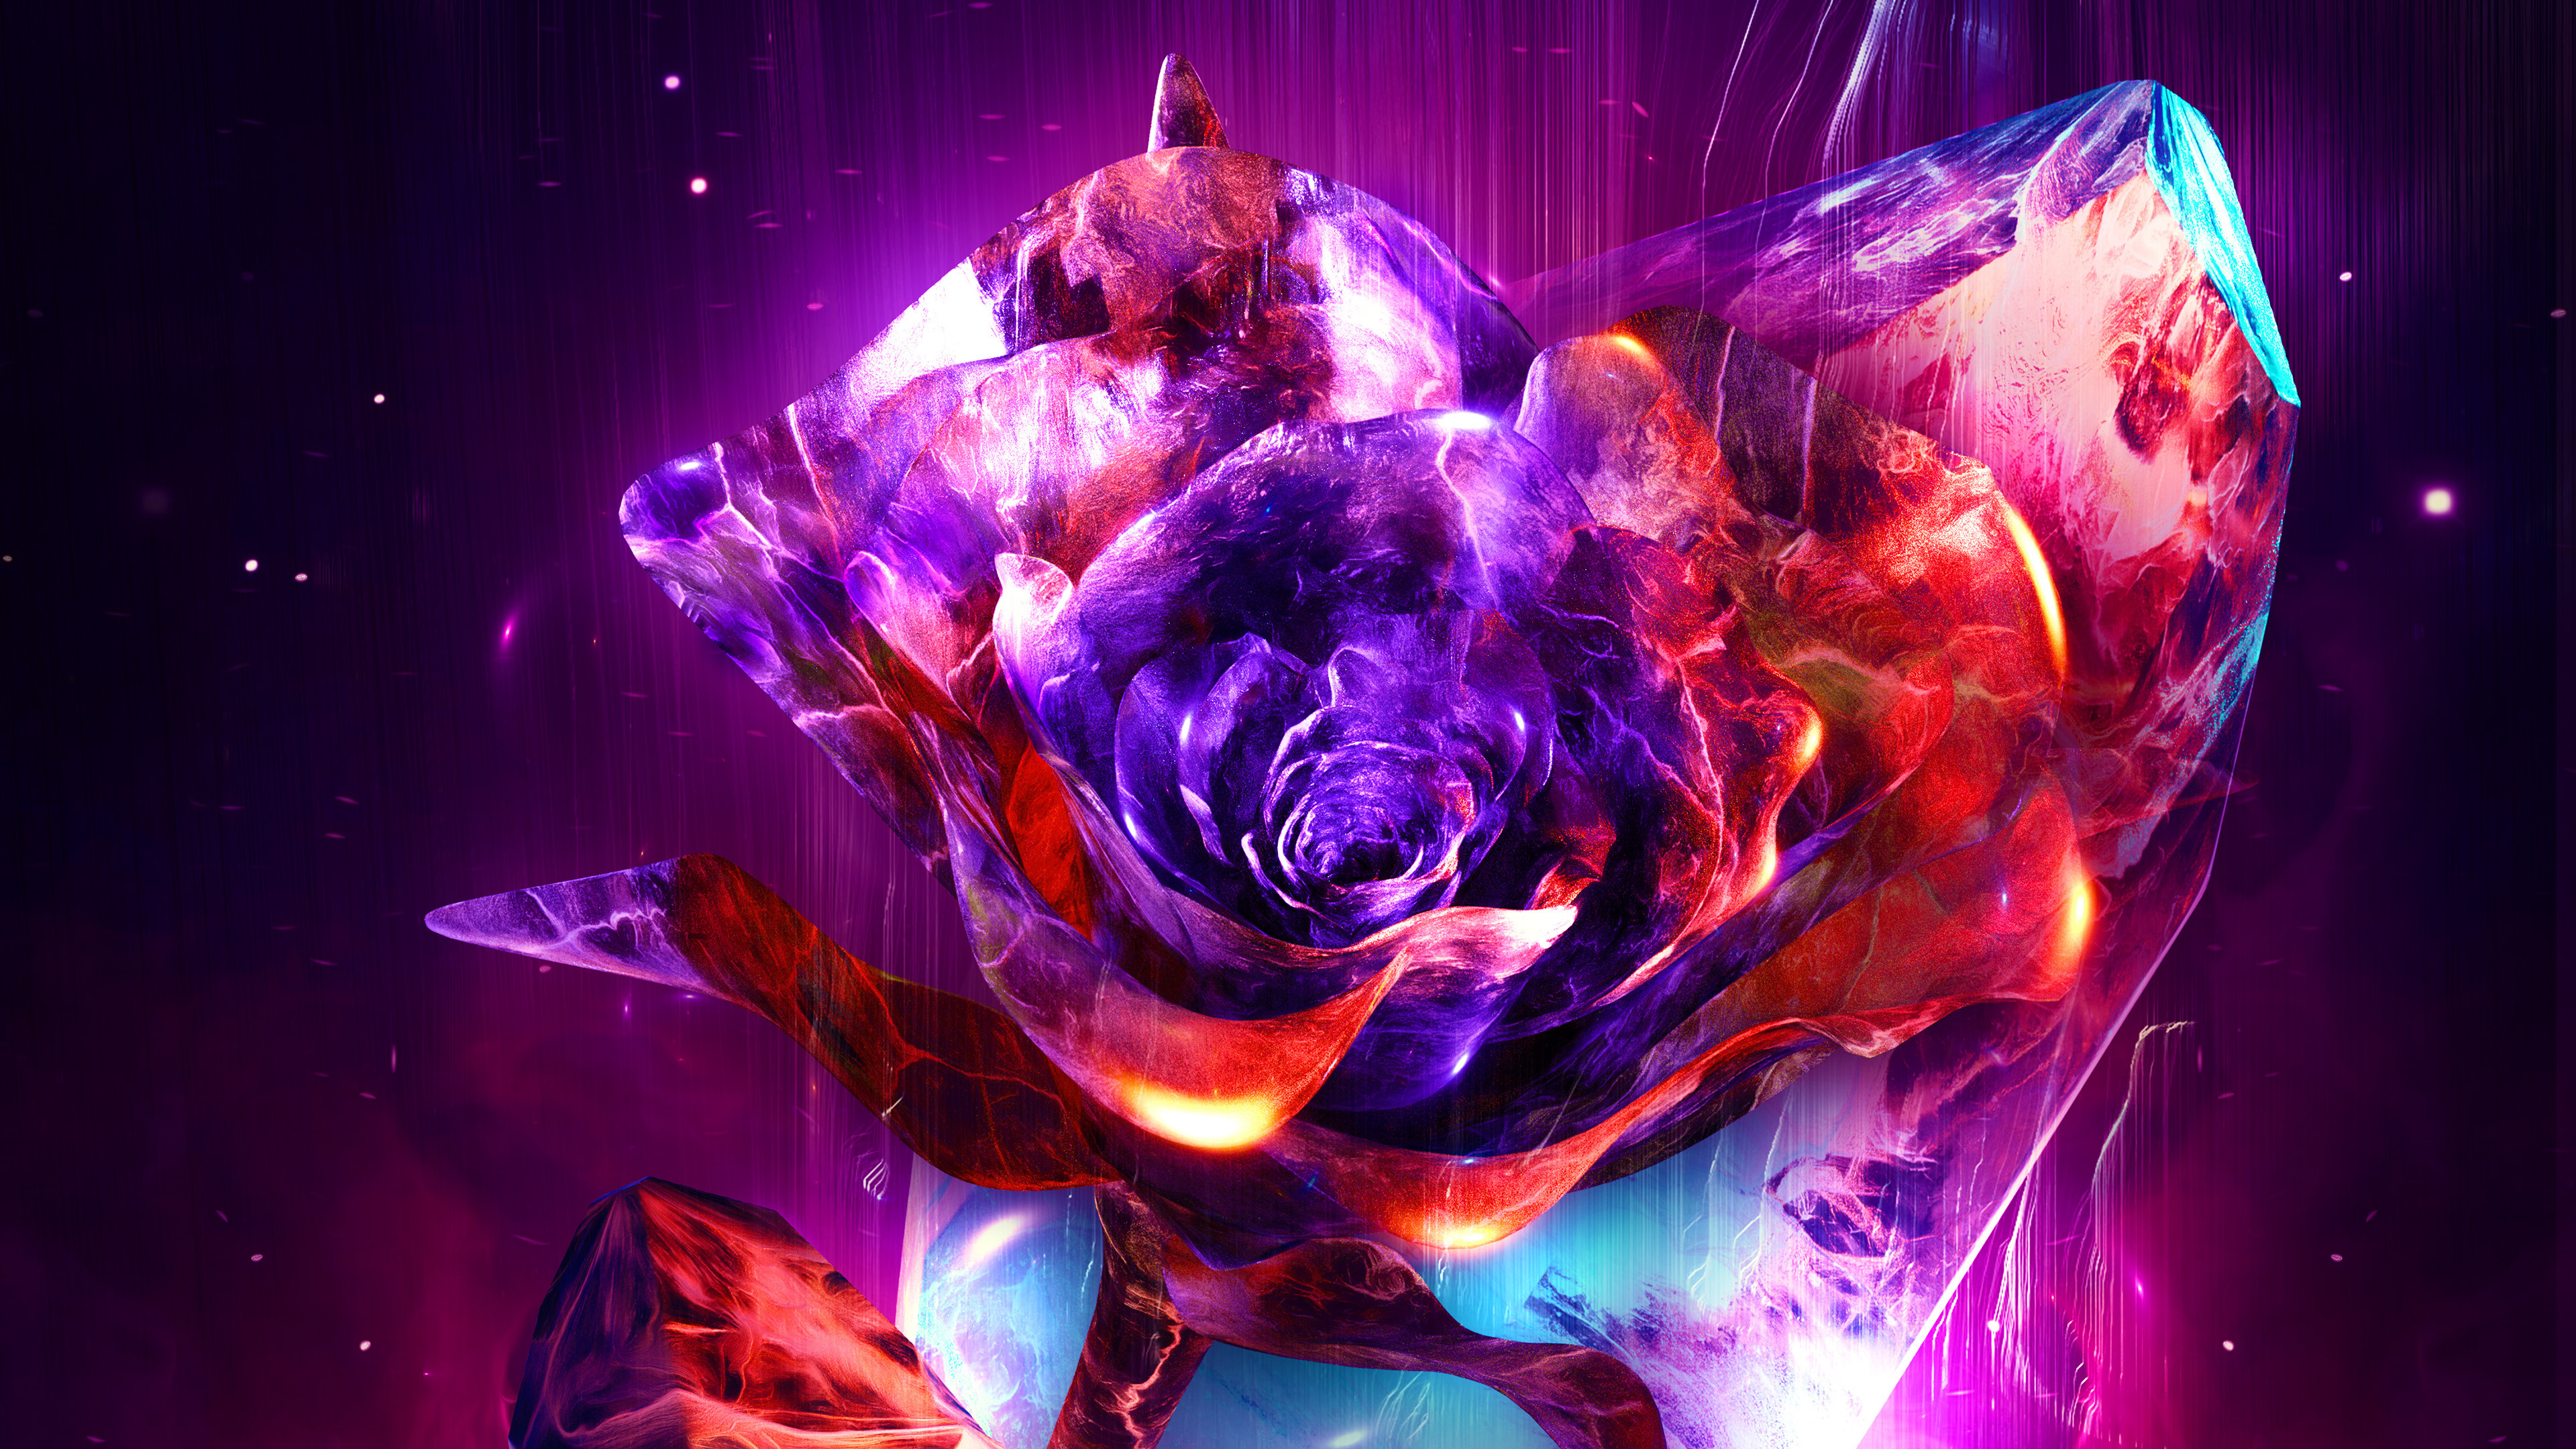 1920x1080 Rose Abstract 4k Laptop Full Hd 1080p Hd 4k Wallpapers Images Backgrounds Photos And Pictures